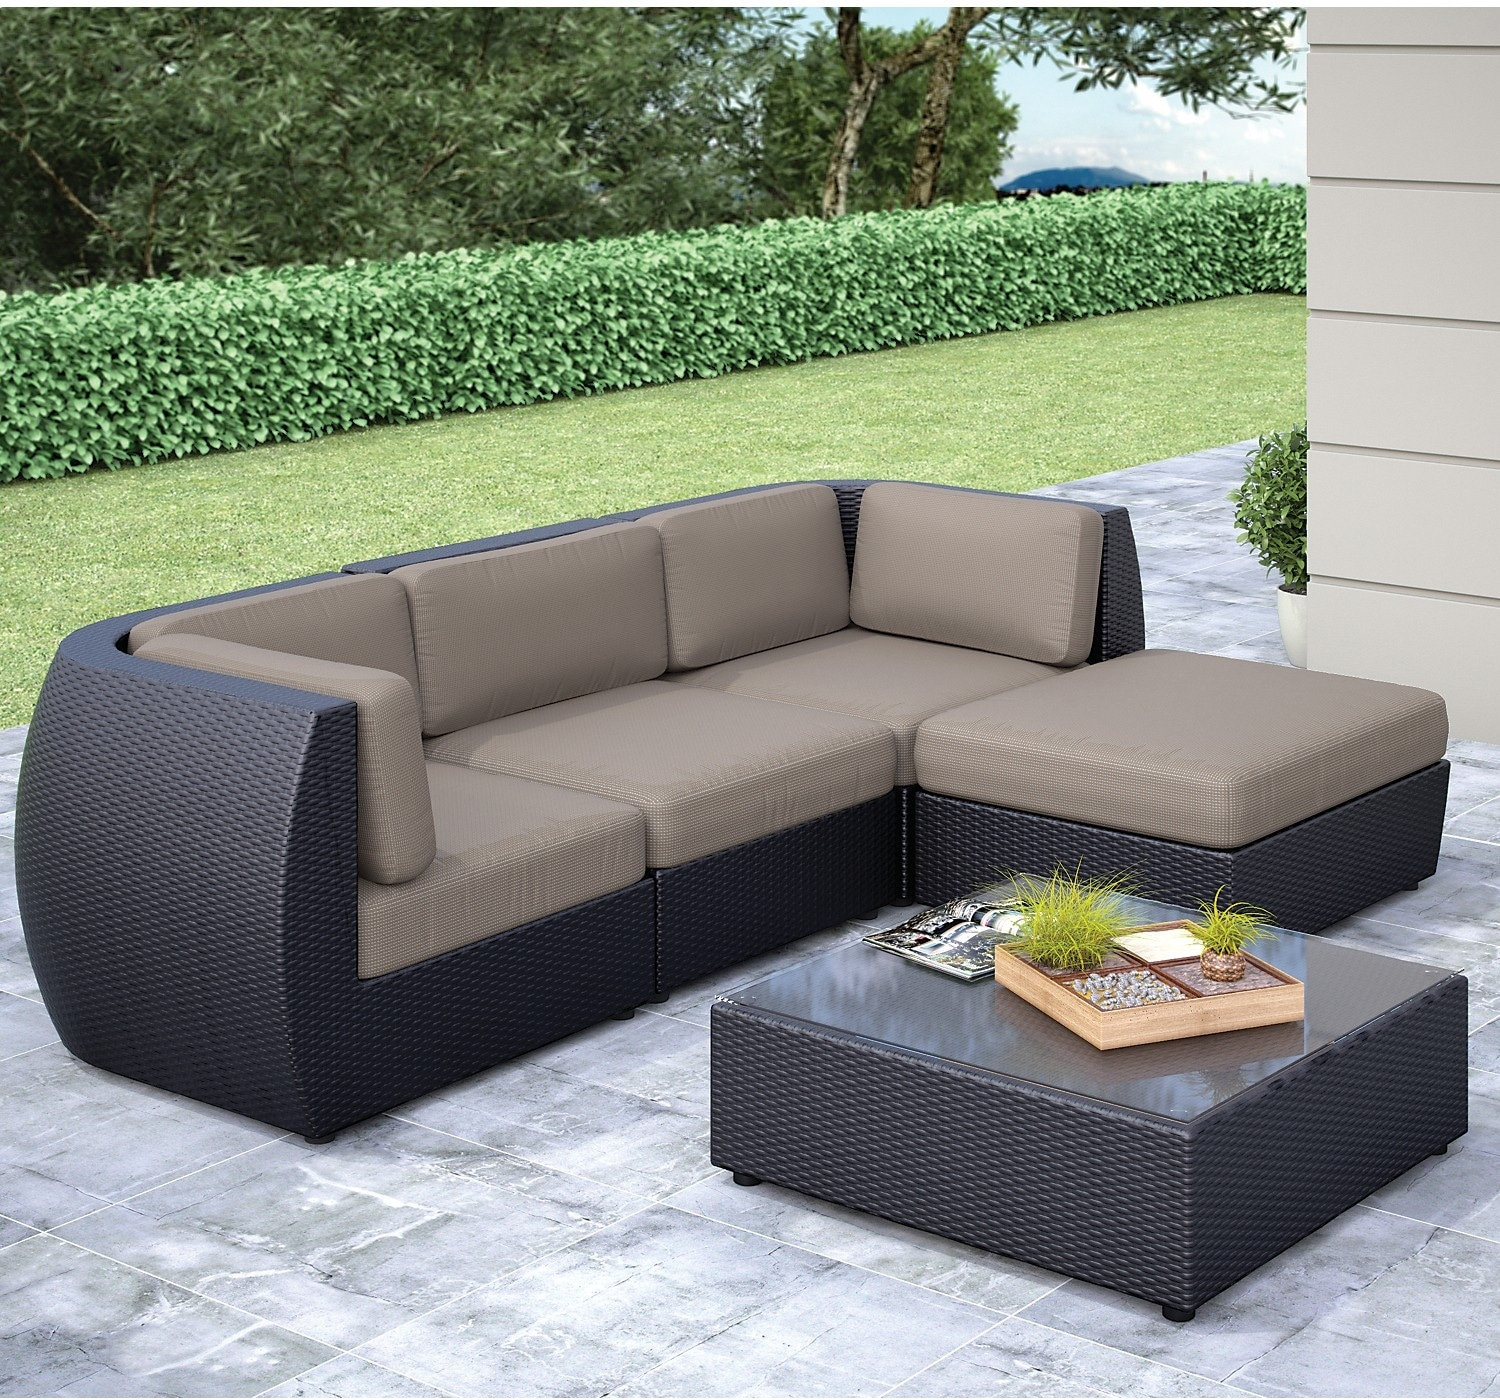 Outdoor Furniture - Penzance 5-Piece Patio Set